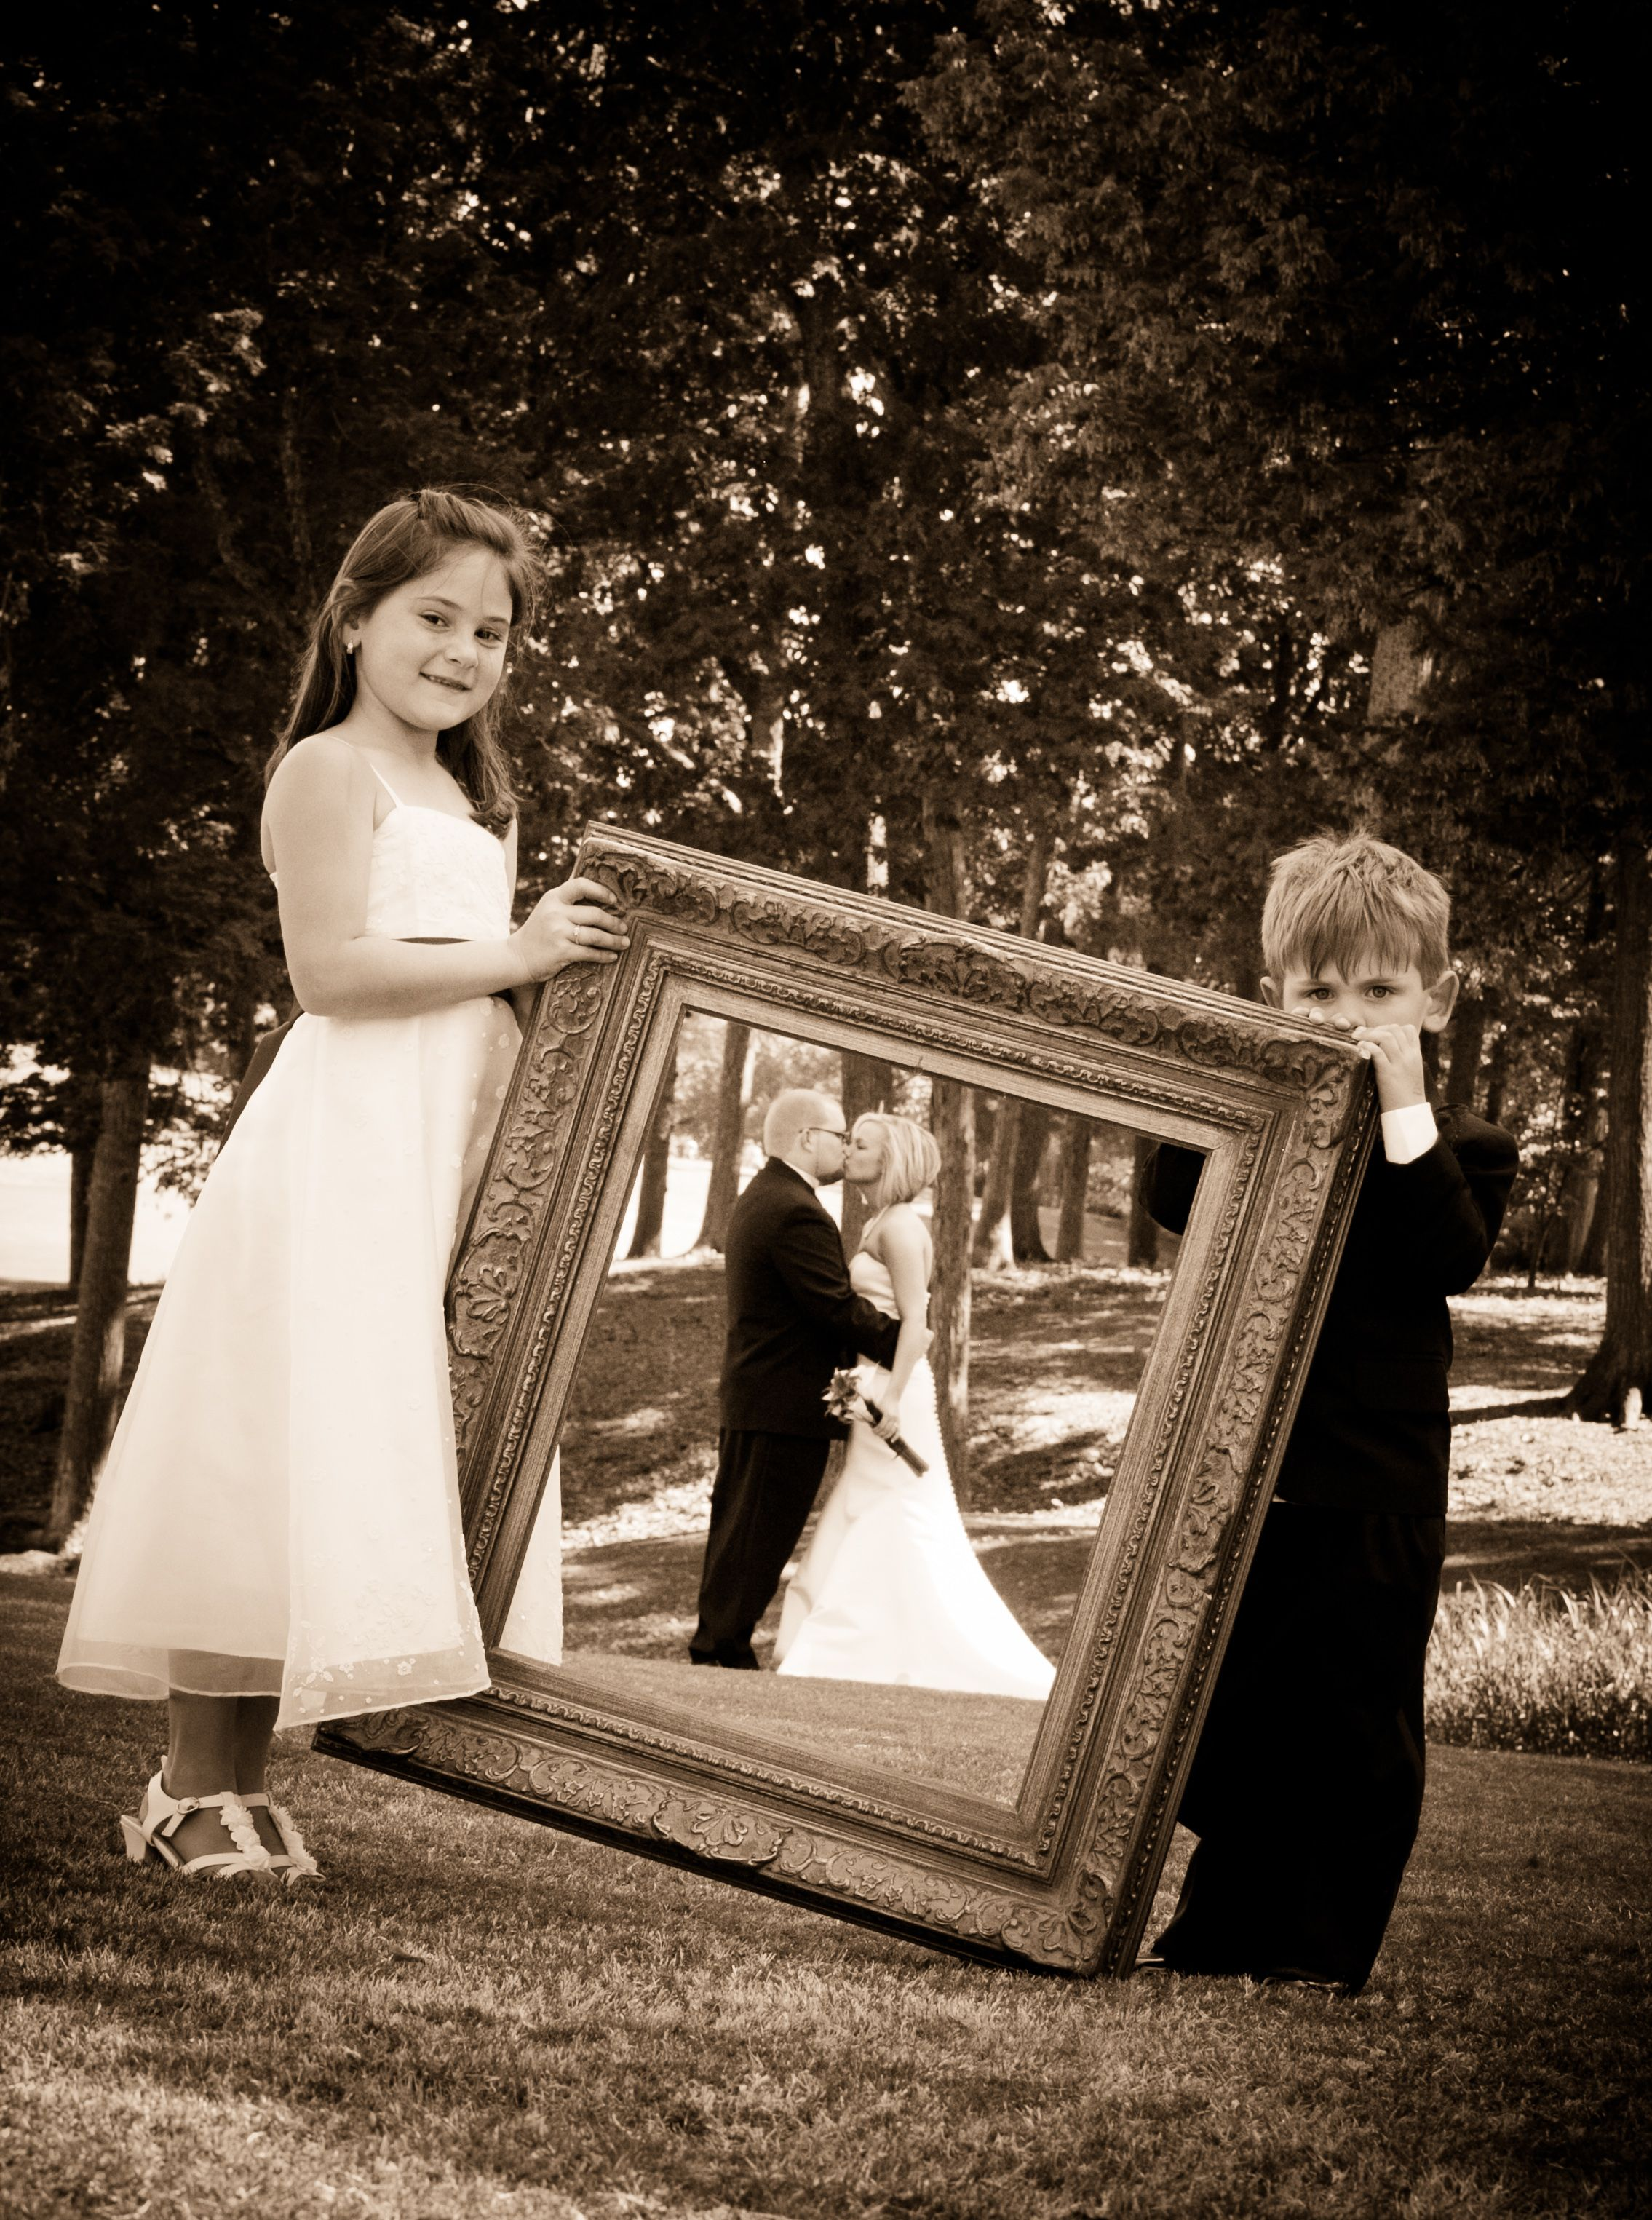 Wedding Photography Ideas For Posing: Have Your Ring Bearer And Flower Girl Hold A Frame With